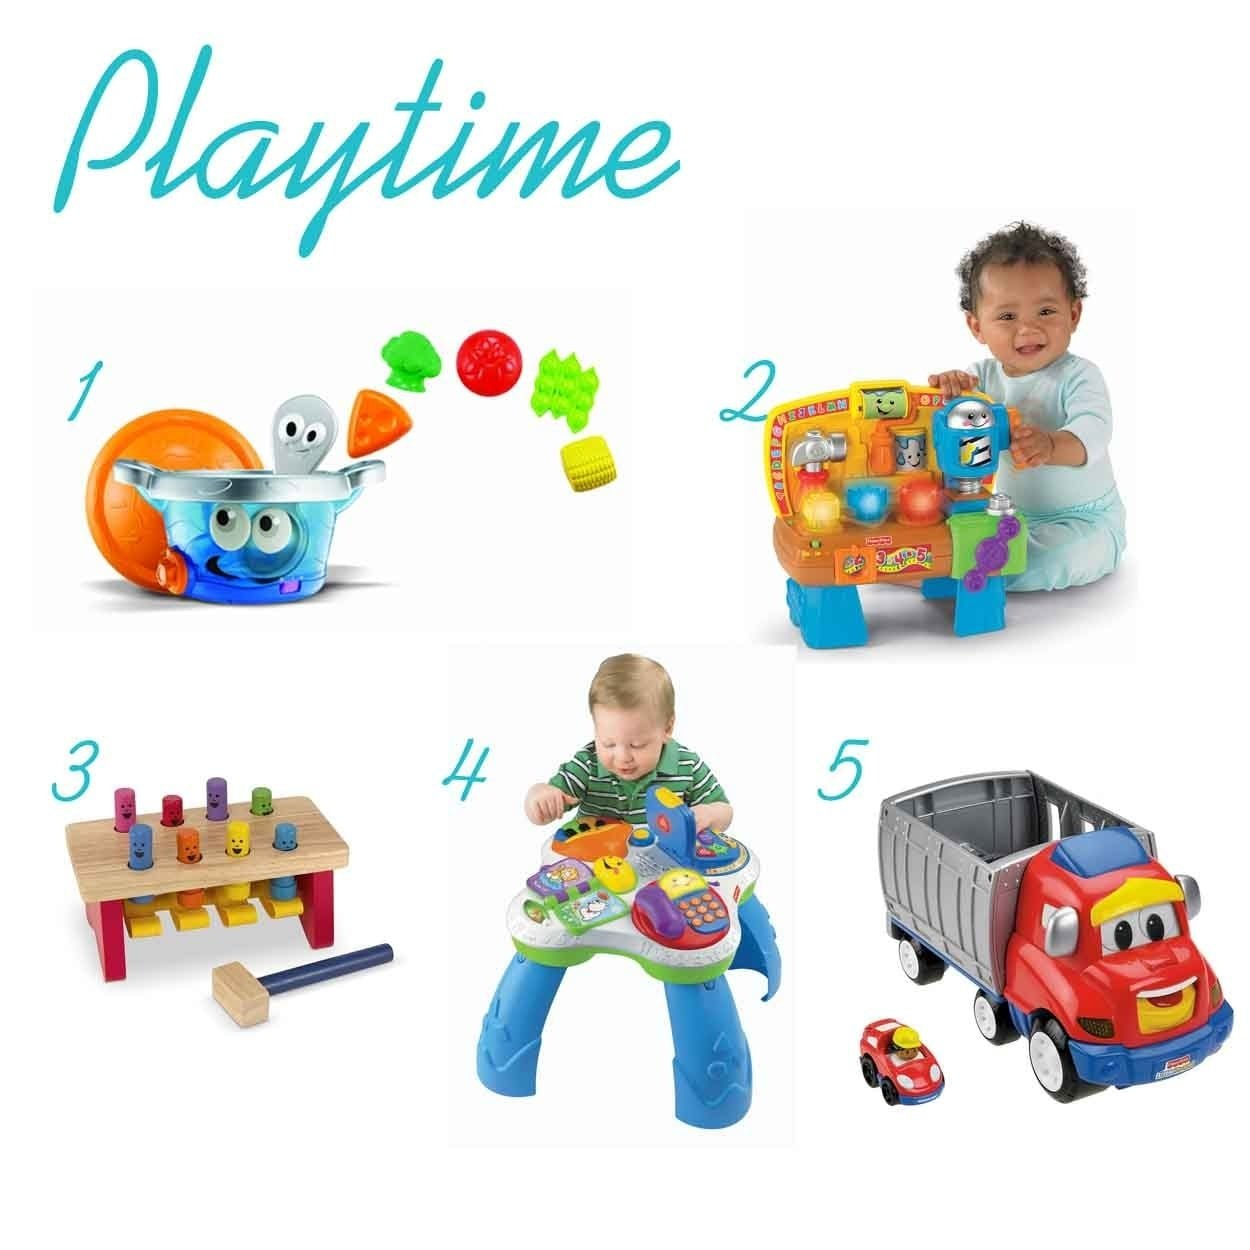 10 Unique Gift Ideas For One Year Old Boy the ultimate gift list for a 1 year old boy e280a2 the pinning mama 5